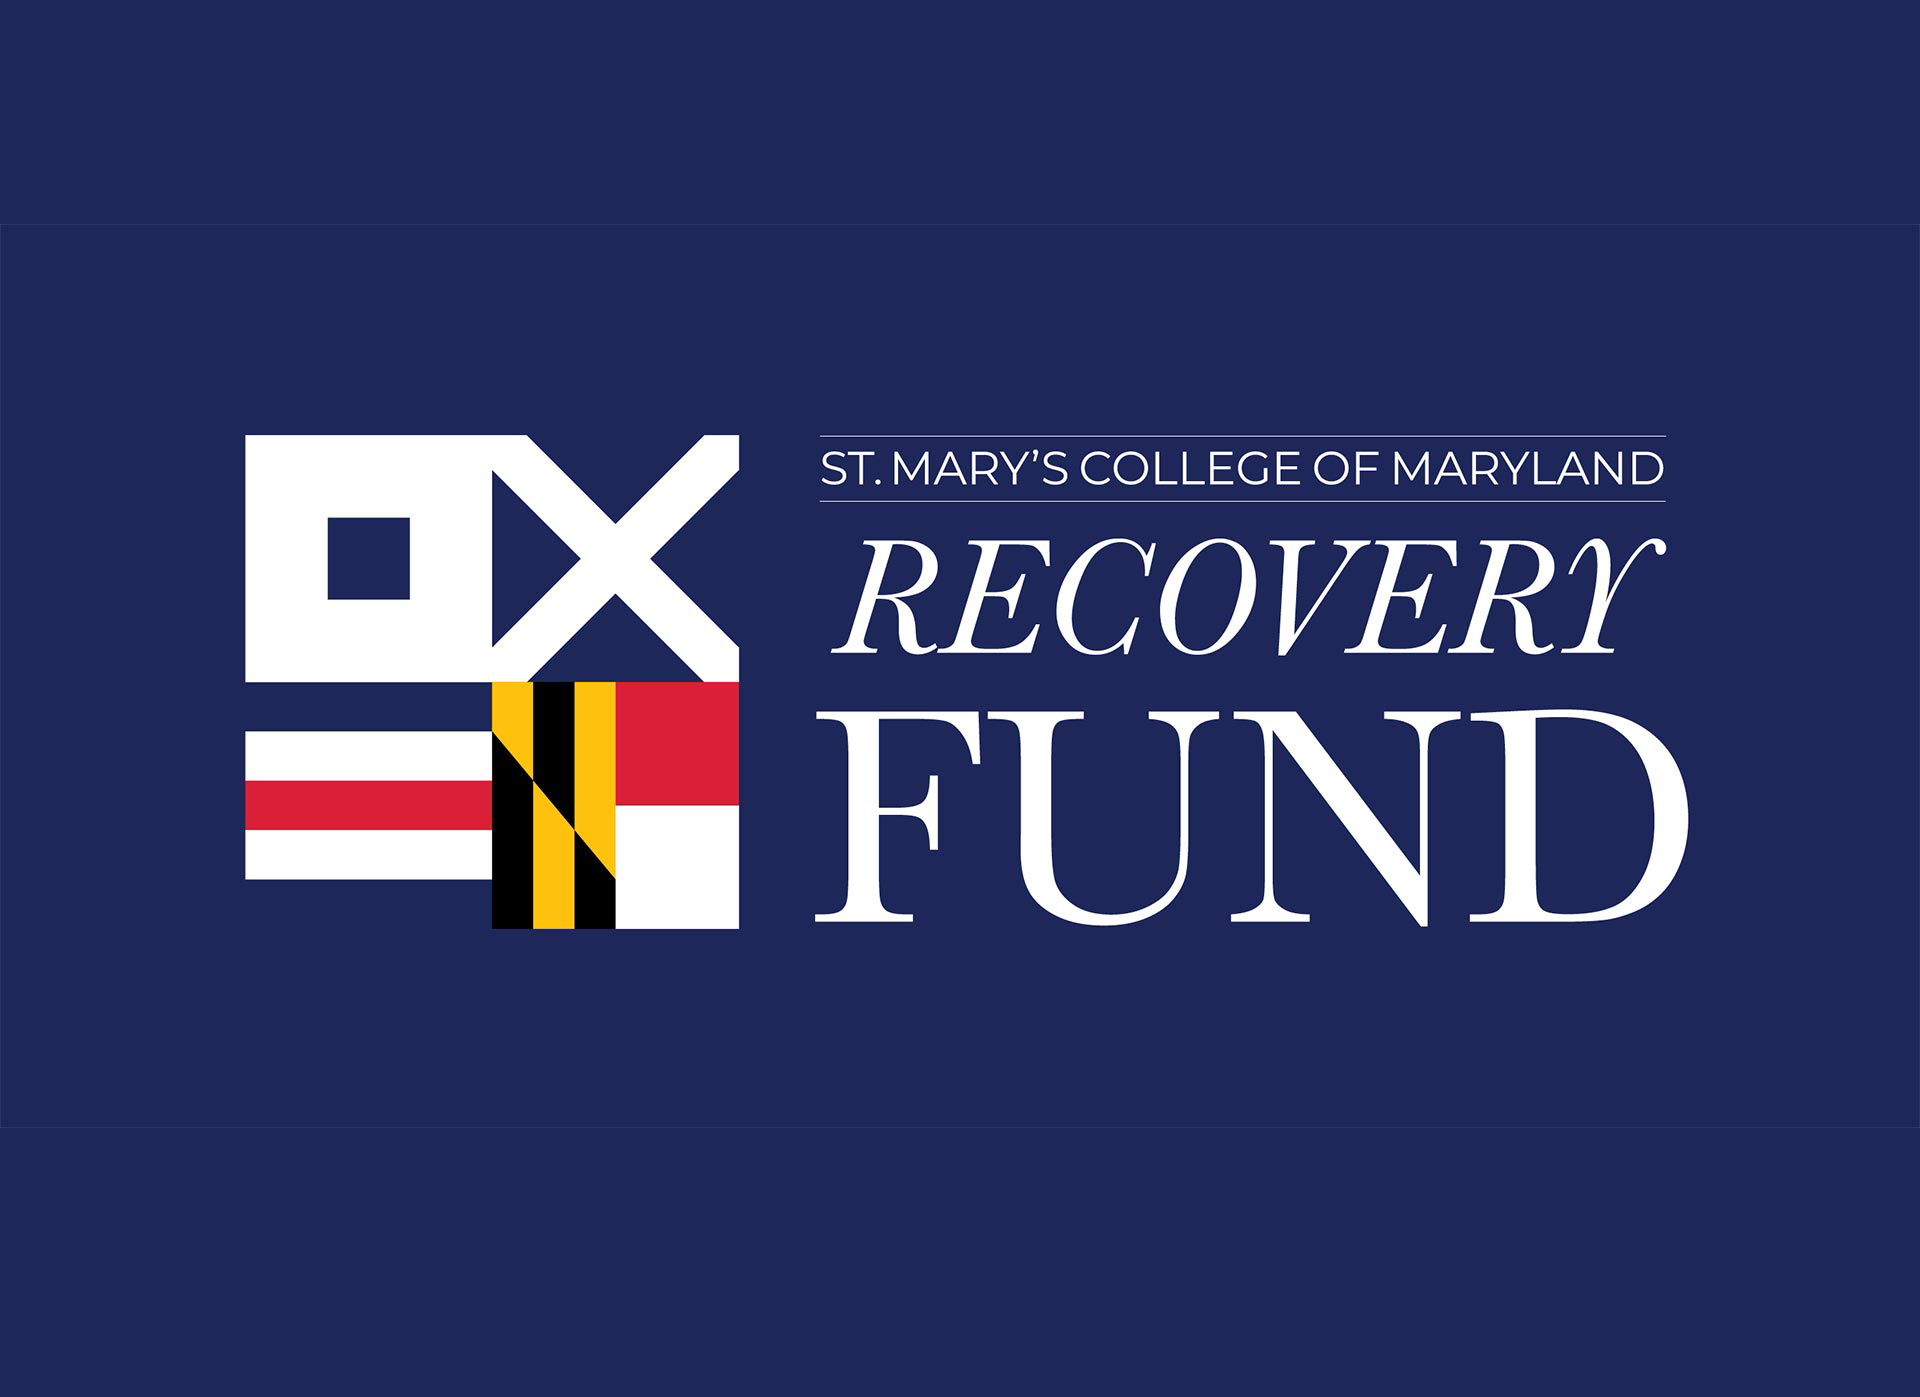 The Recovery Fund